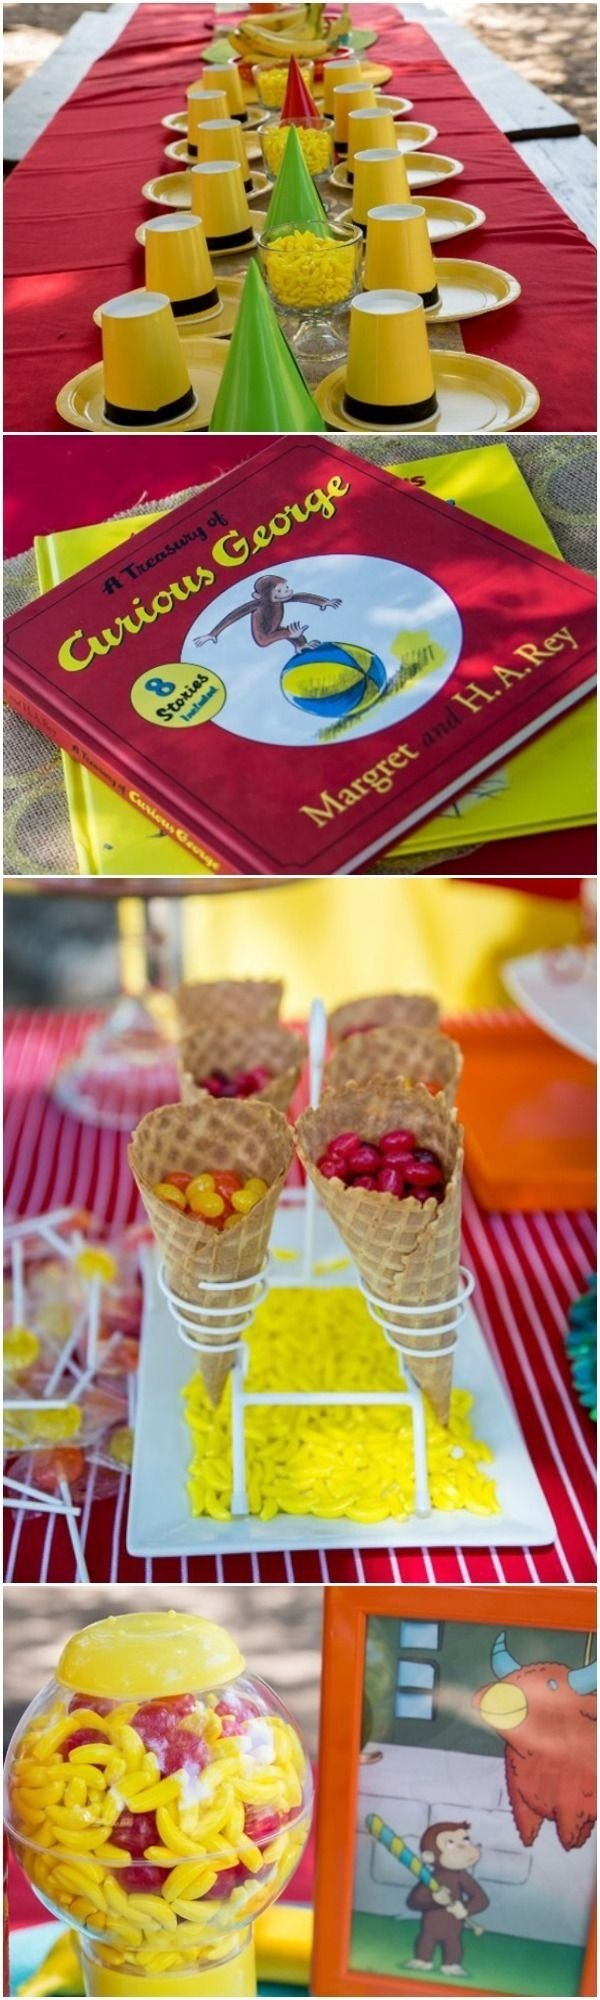 10 Awesome Curious George Party Favor Ideas 161 best curious george birthday party ideas images on pinterest 2020